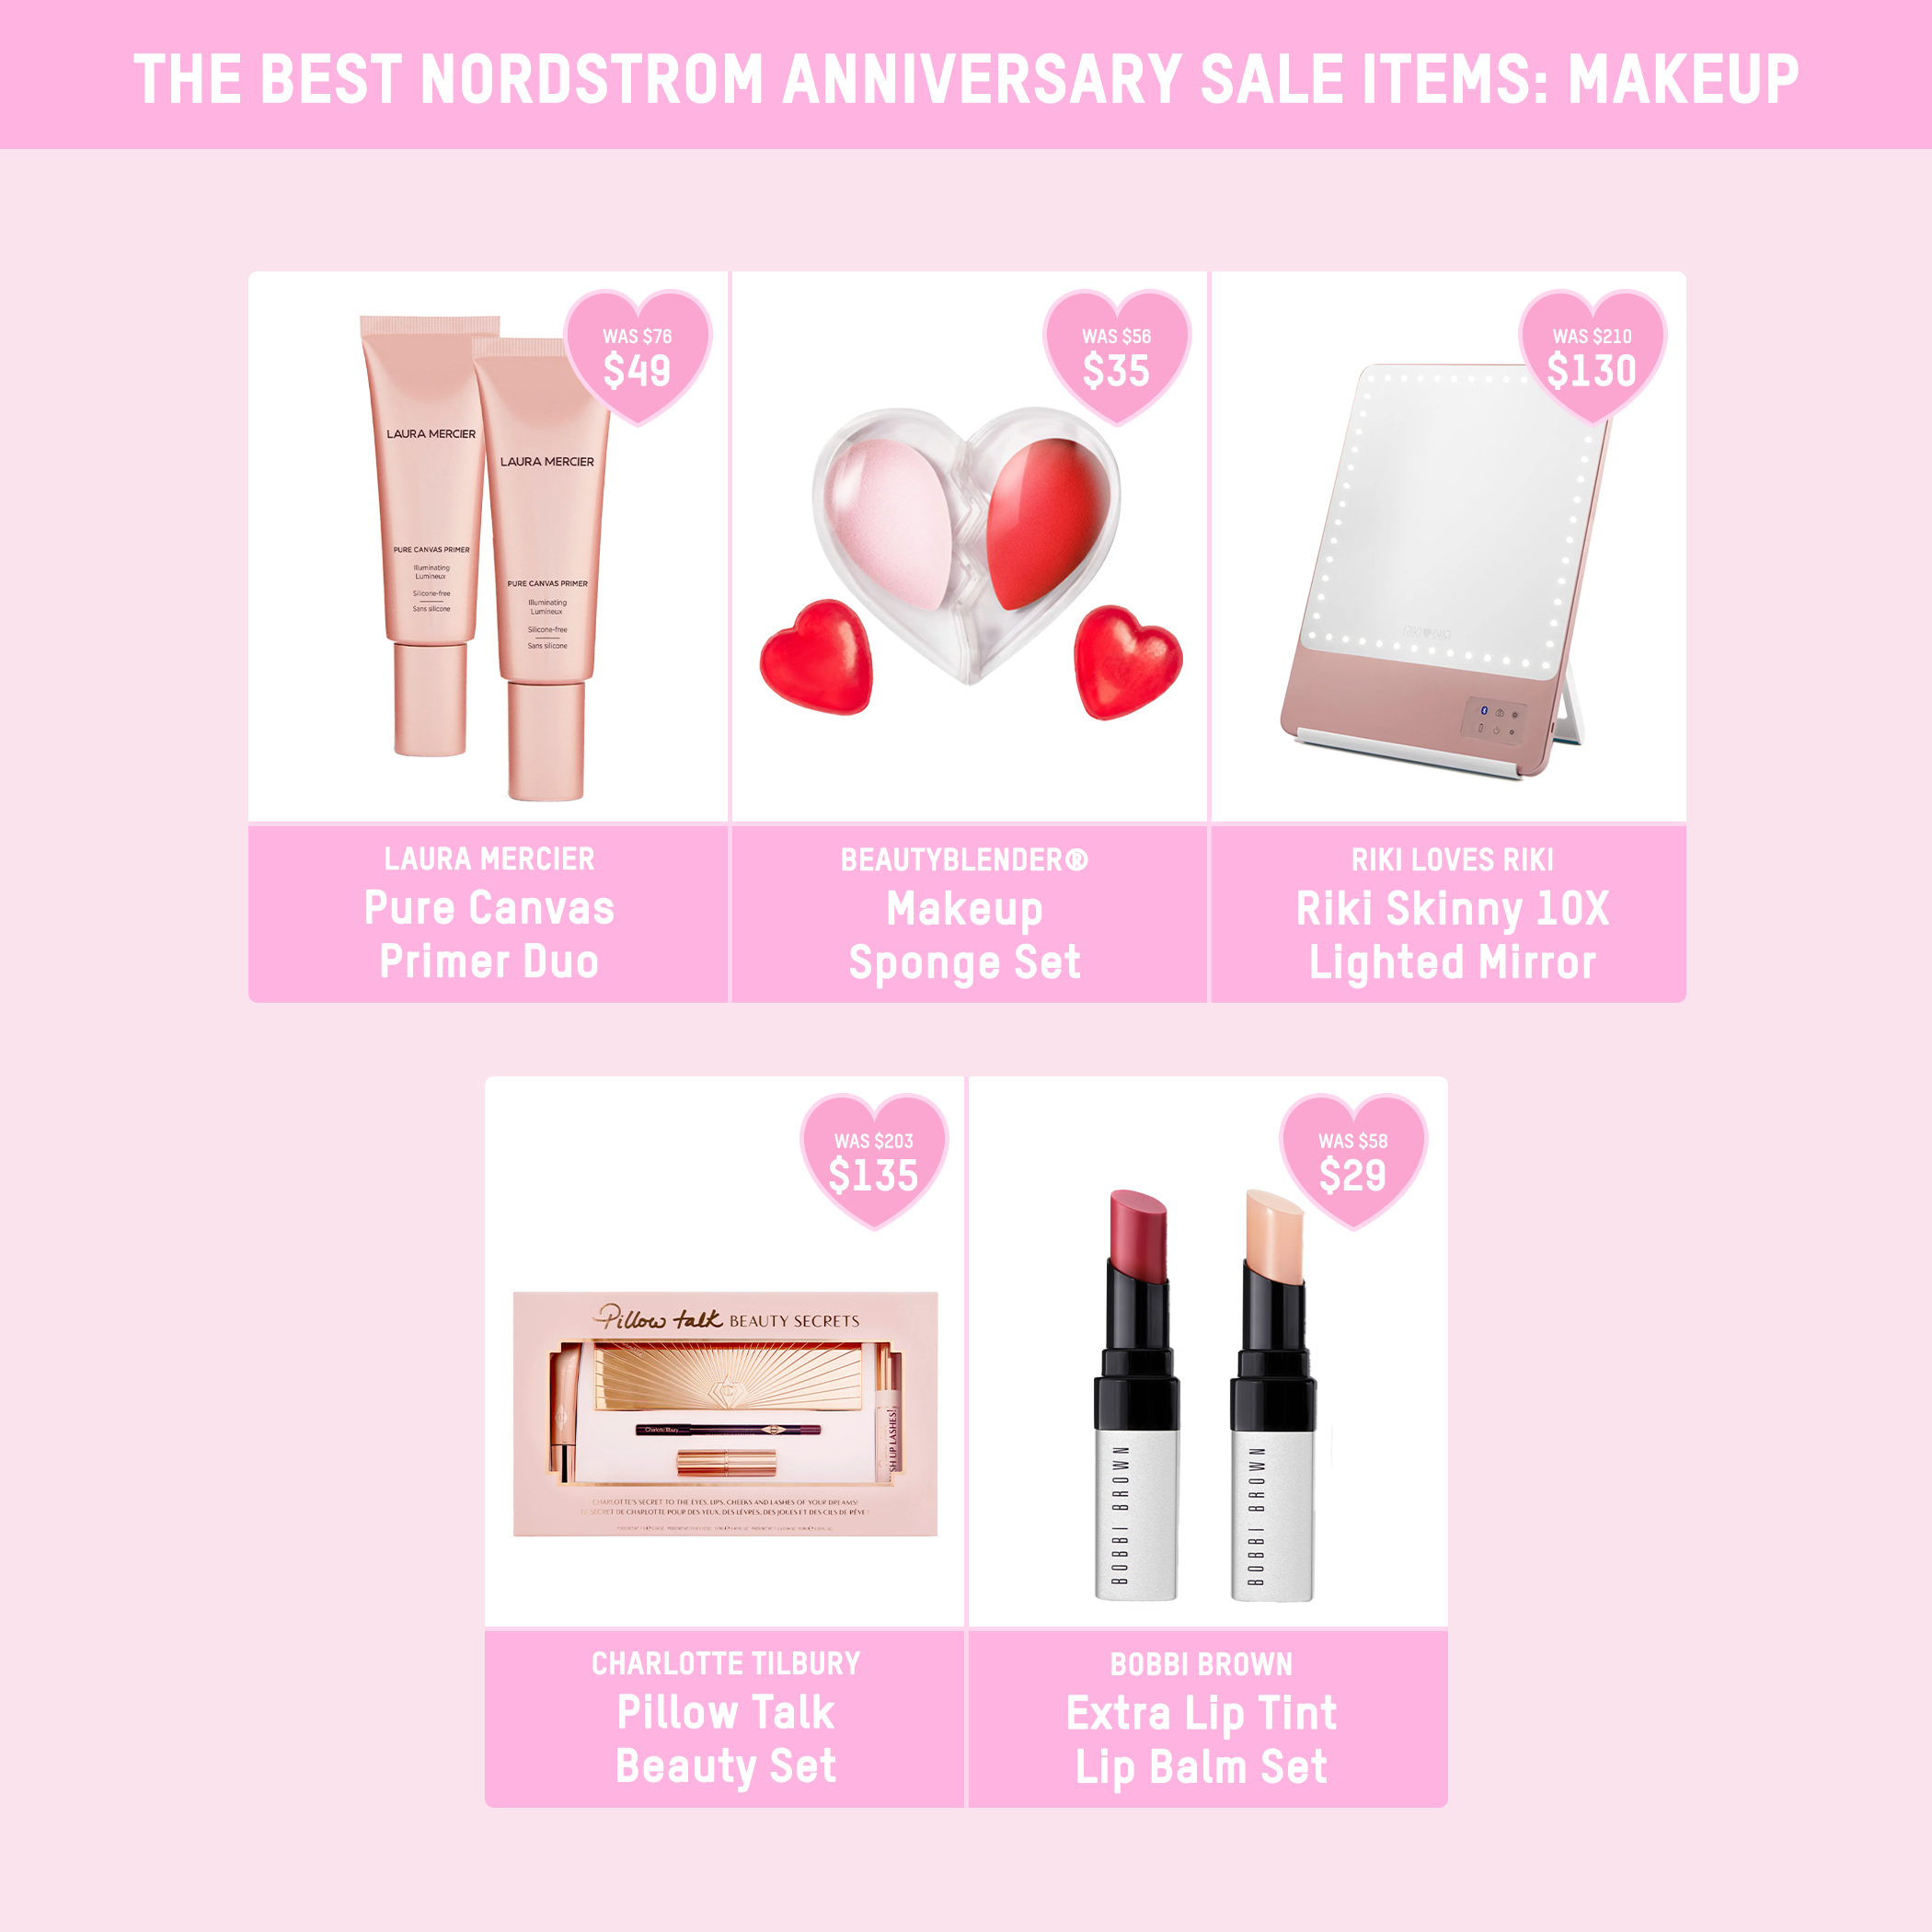 The Best Nordstrom Anniversary Sale Items Makeup